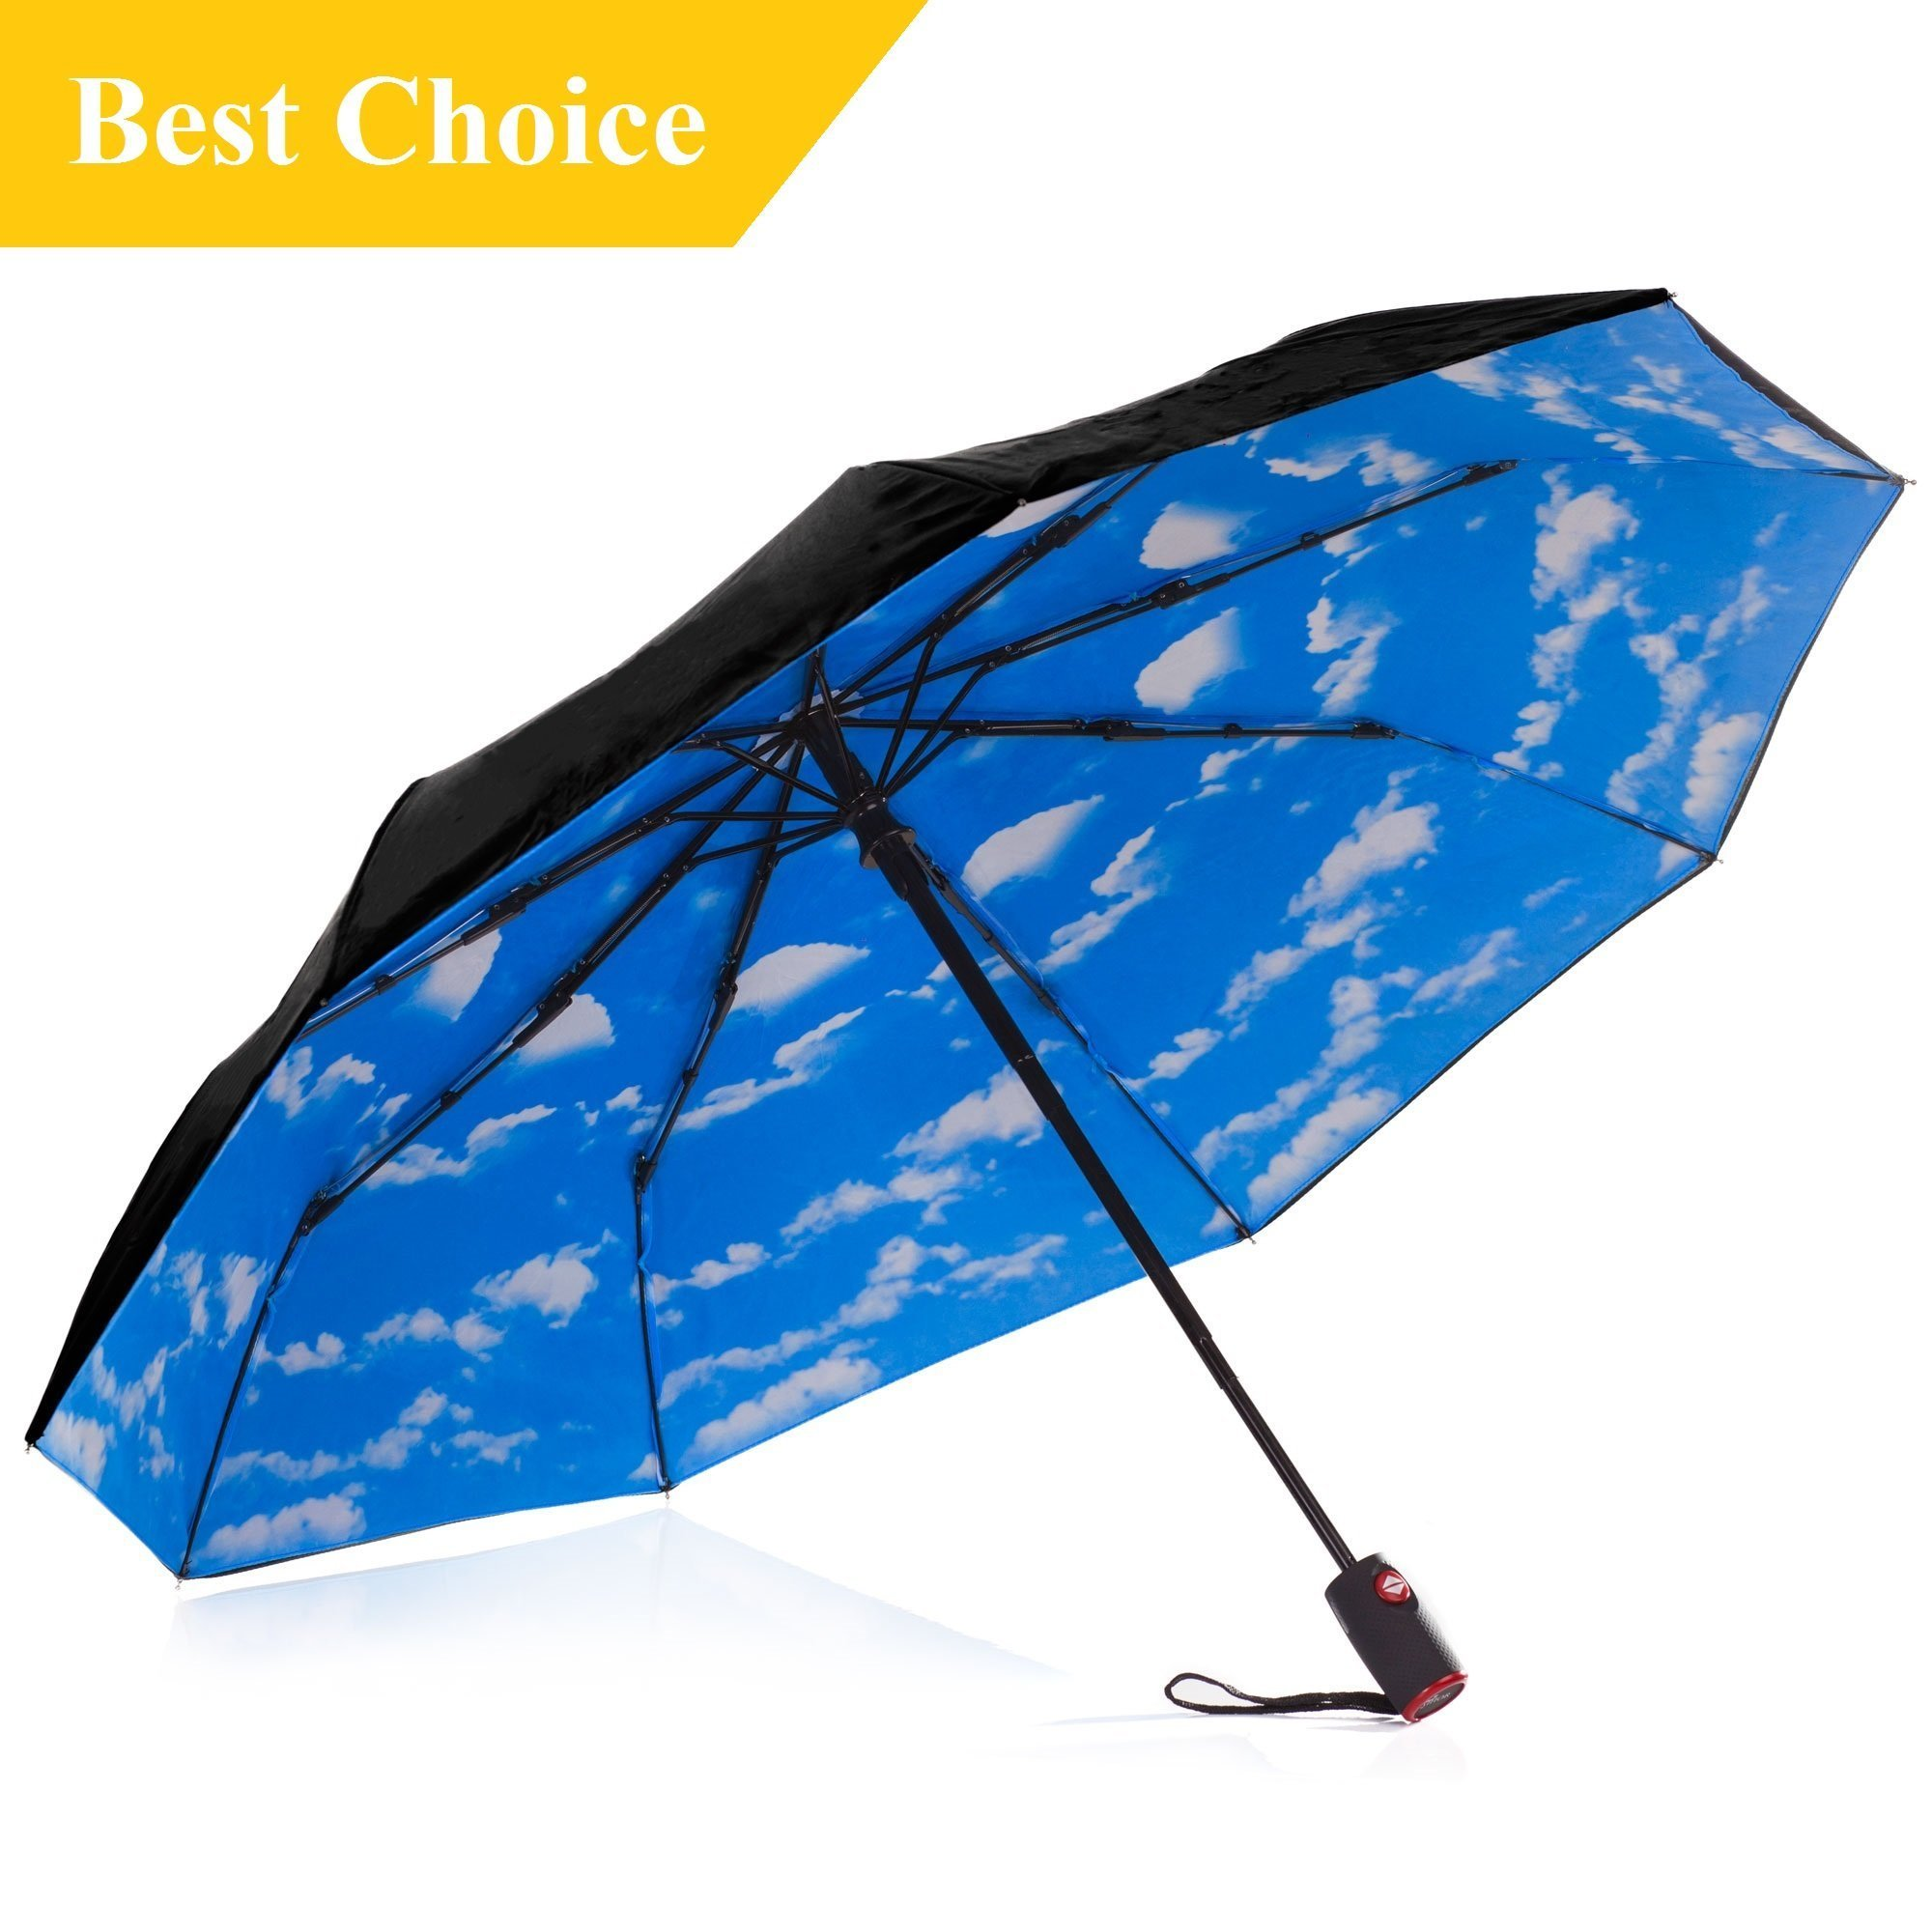 IHOR Best Automatic Compact Windproof Open & Close Wind-Resistant Portable Black Travel Umbrella with Blue Sky canopy Small & Strong, Easy Touch, Totes Micro Mini Male & Female